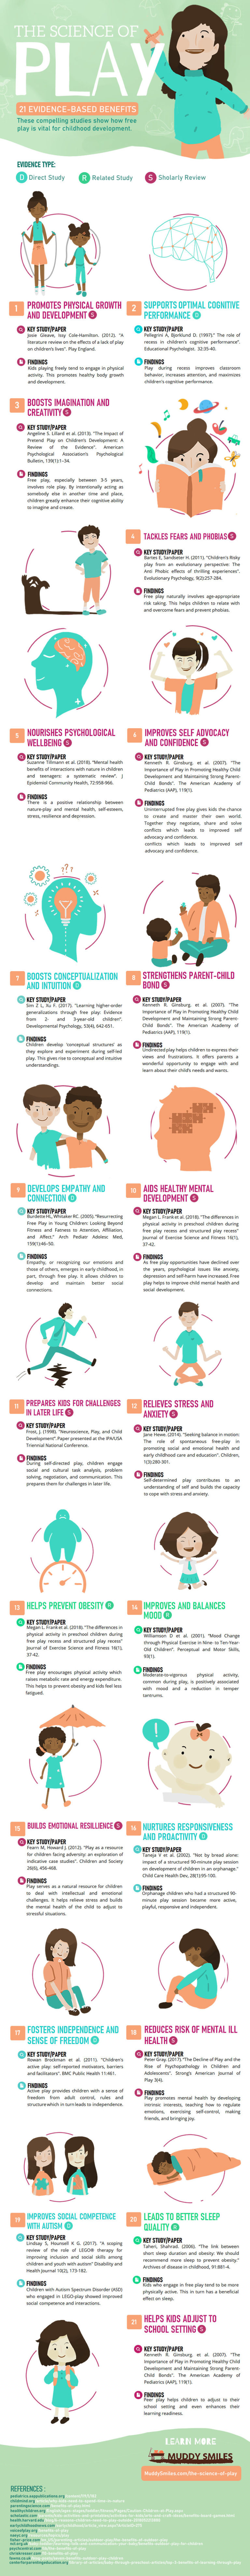 An Infographic on the Science of Play